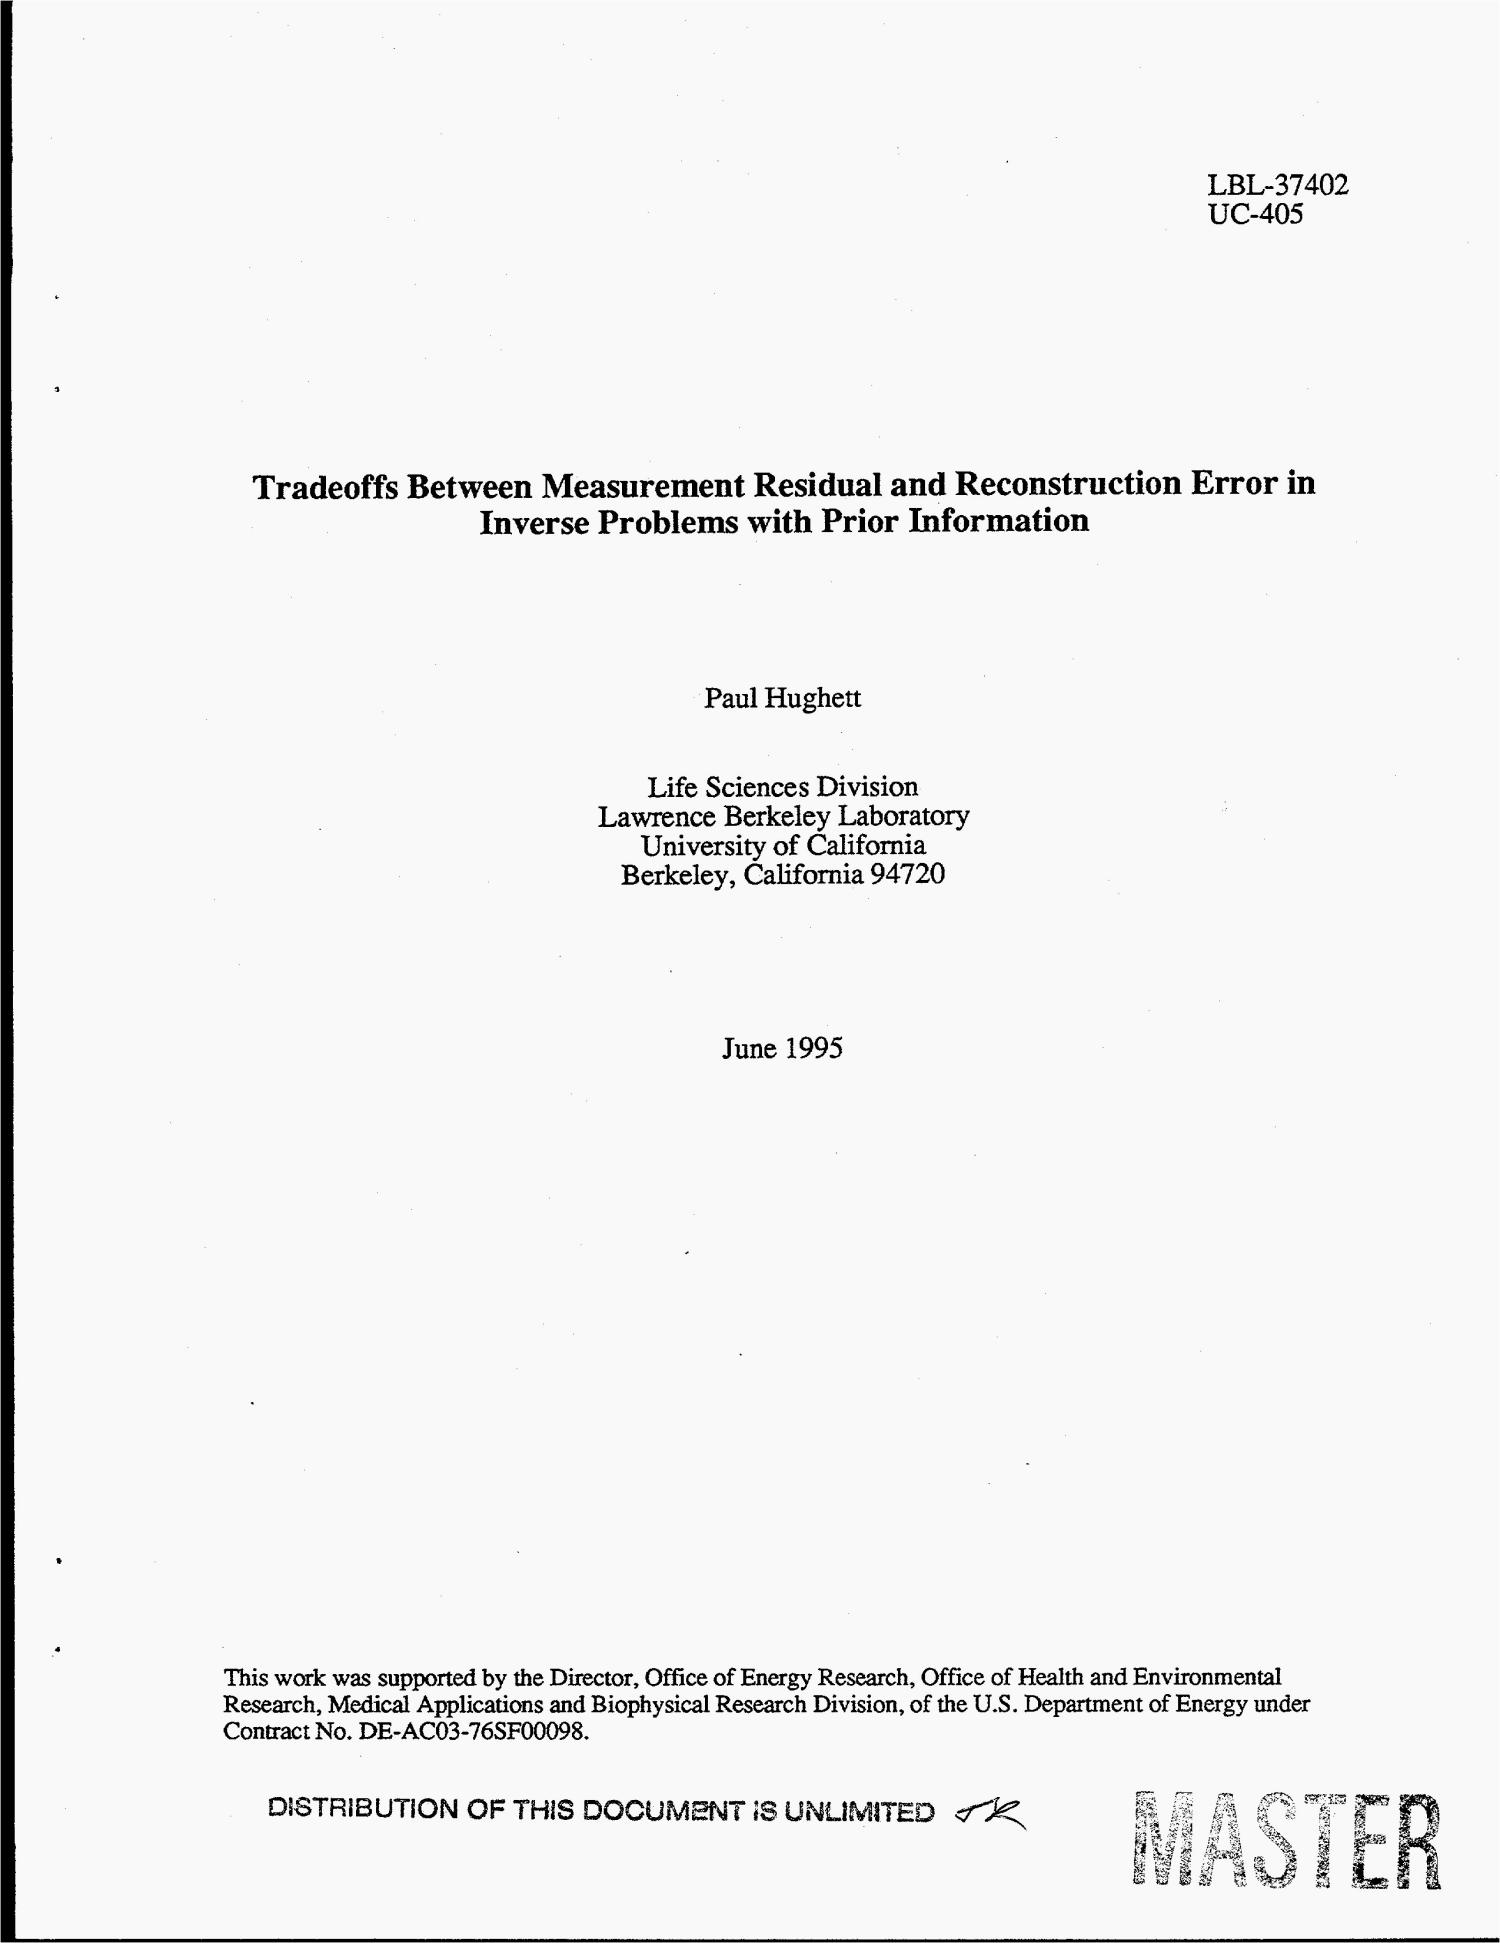 Tradeoffs between measurement residual and reconstruction error in inverse problems with prior information                                                                                                      [Sequence #]: 3 of 16